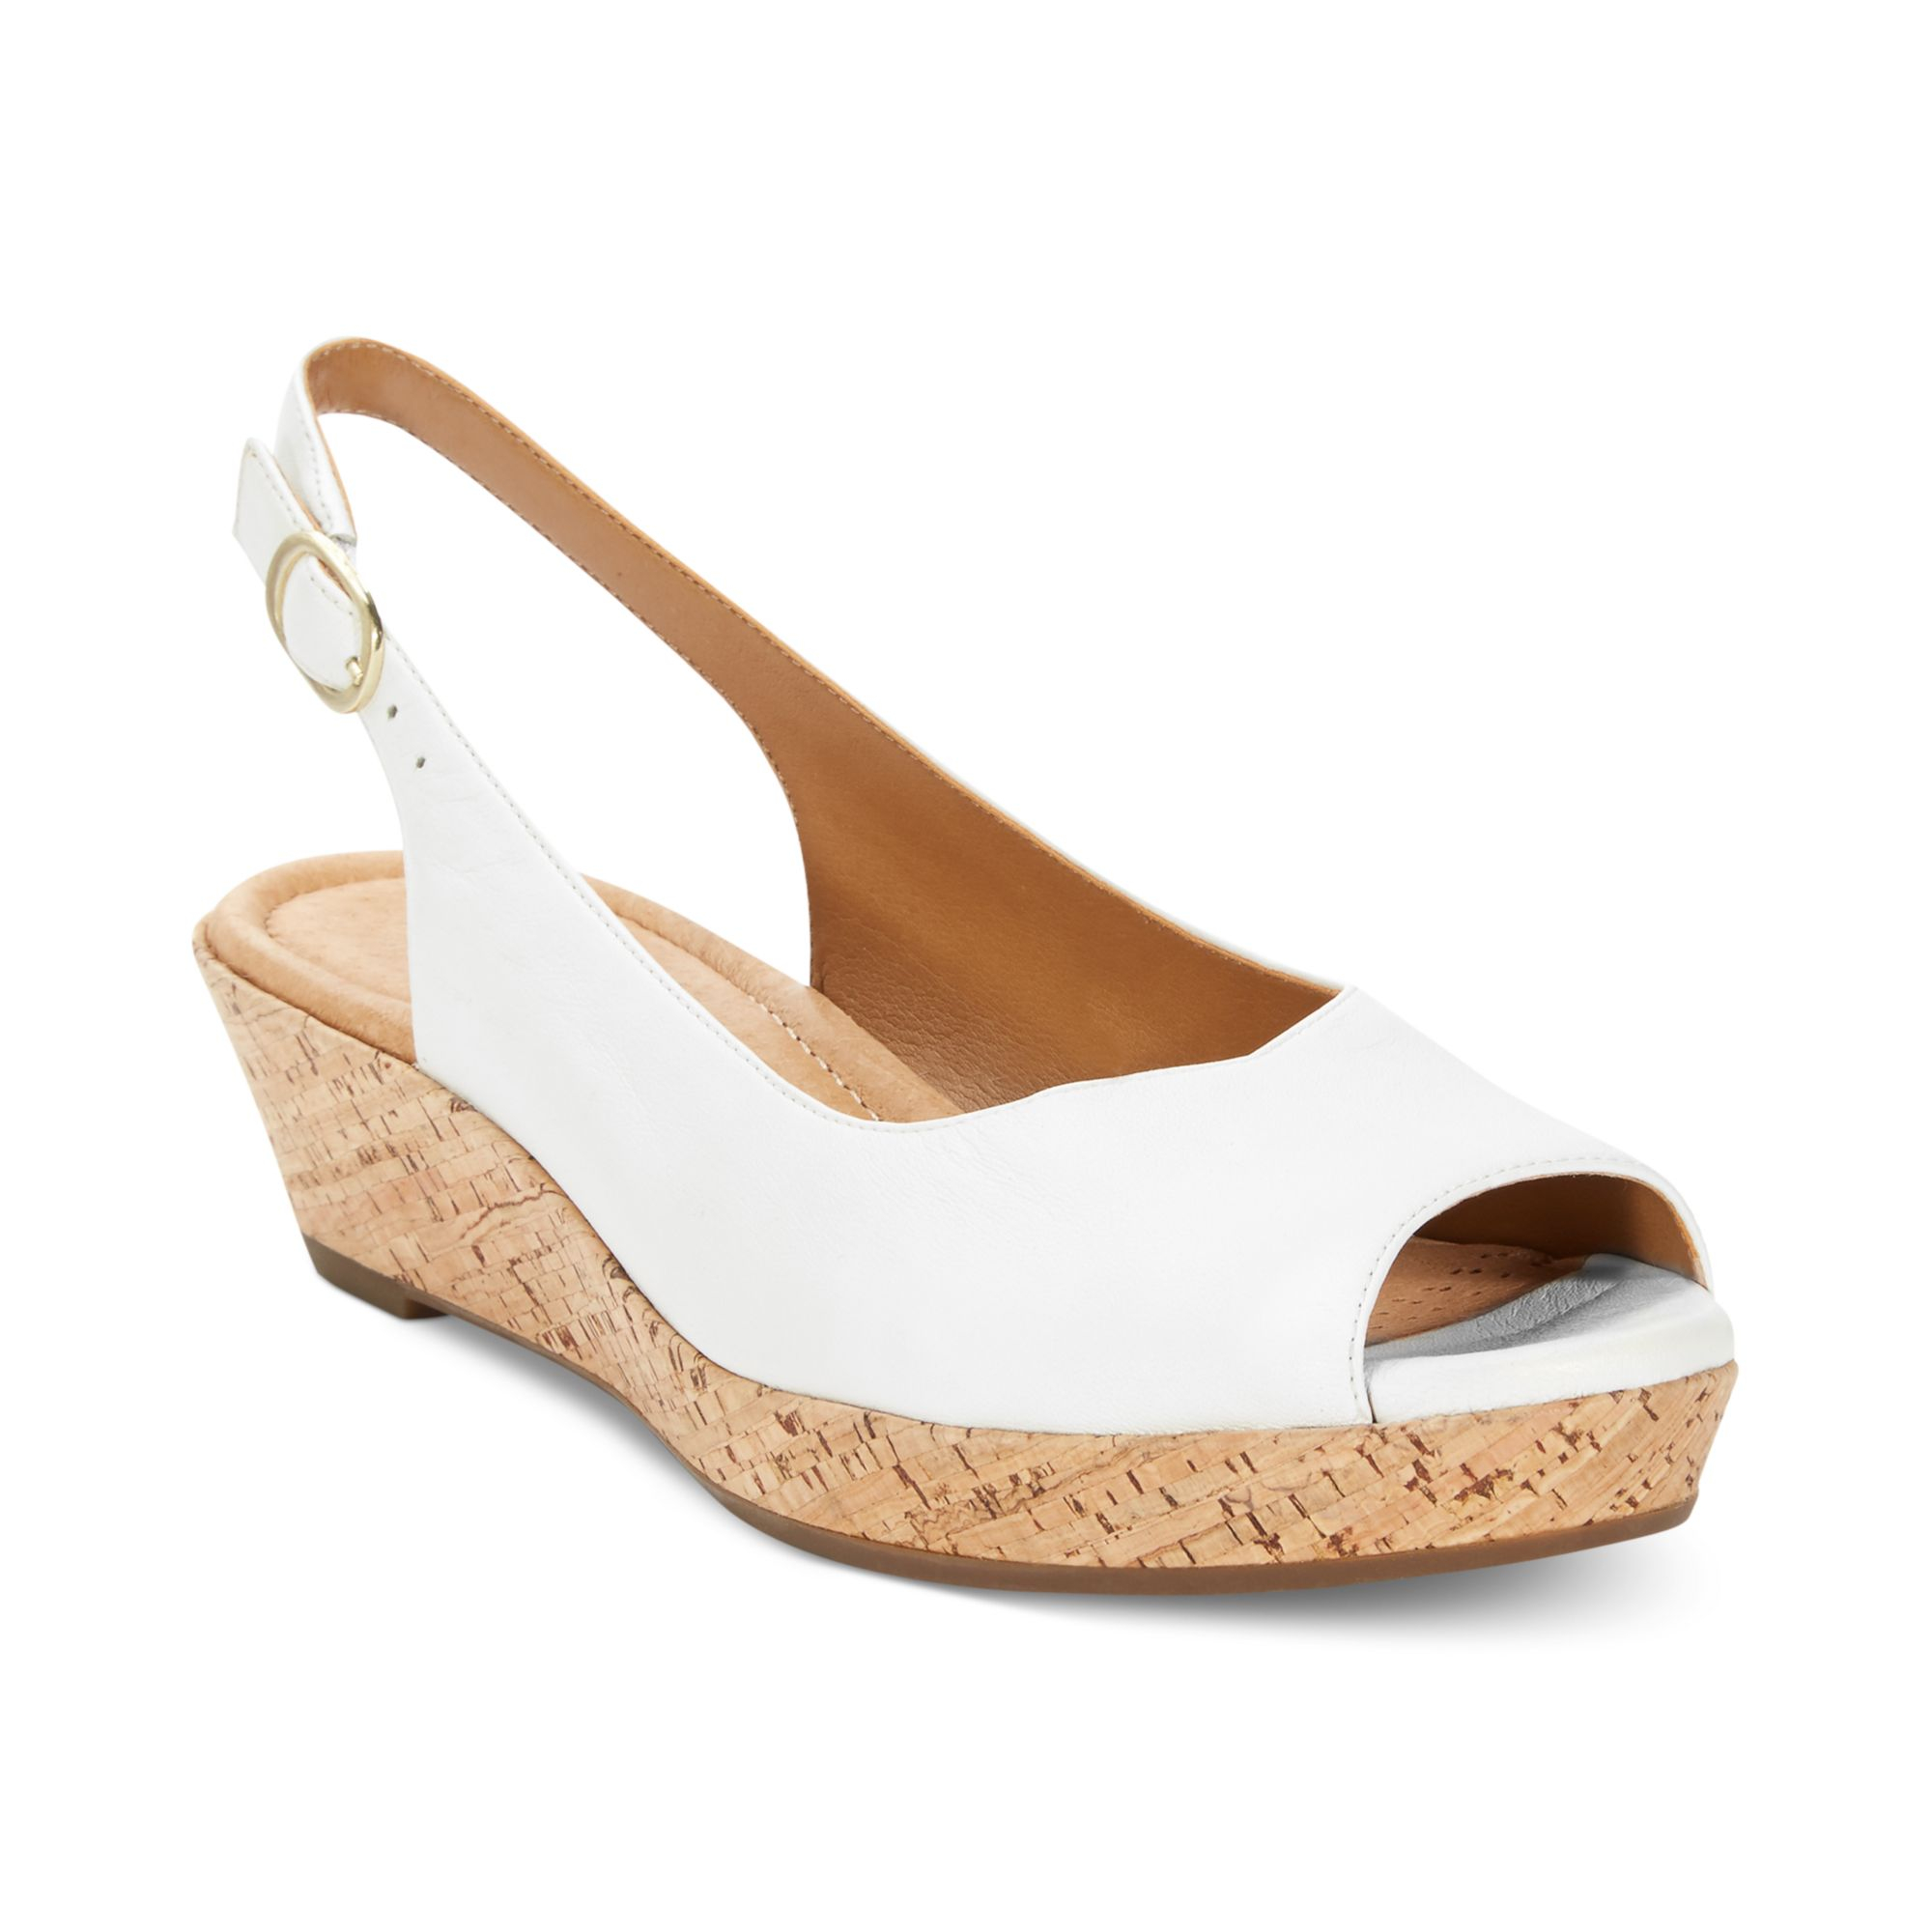 Simple Wear Anything And Go Anywhere With Clarks&174 Womens Caslynn Shea Wedge Sandals Dont Let This Shoes 3&188&quot Wedge Heel Fool You  Caslynn Shea Has Been Designed With Comfort In Mind Soft, Nubuck Leather Uppers Criss Cross